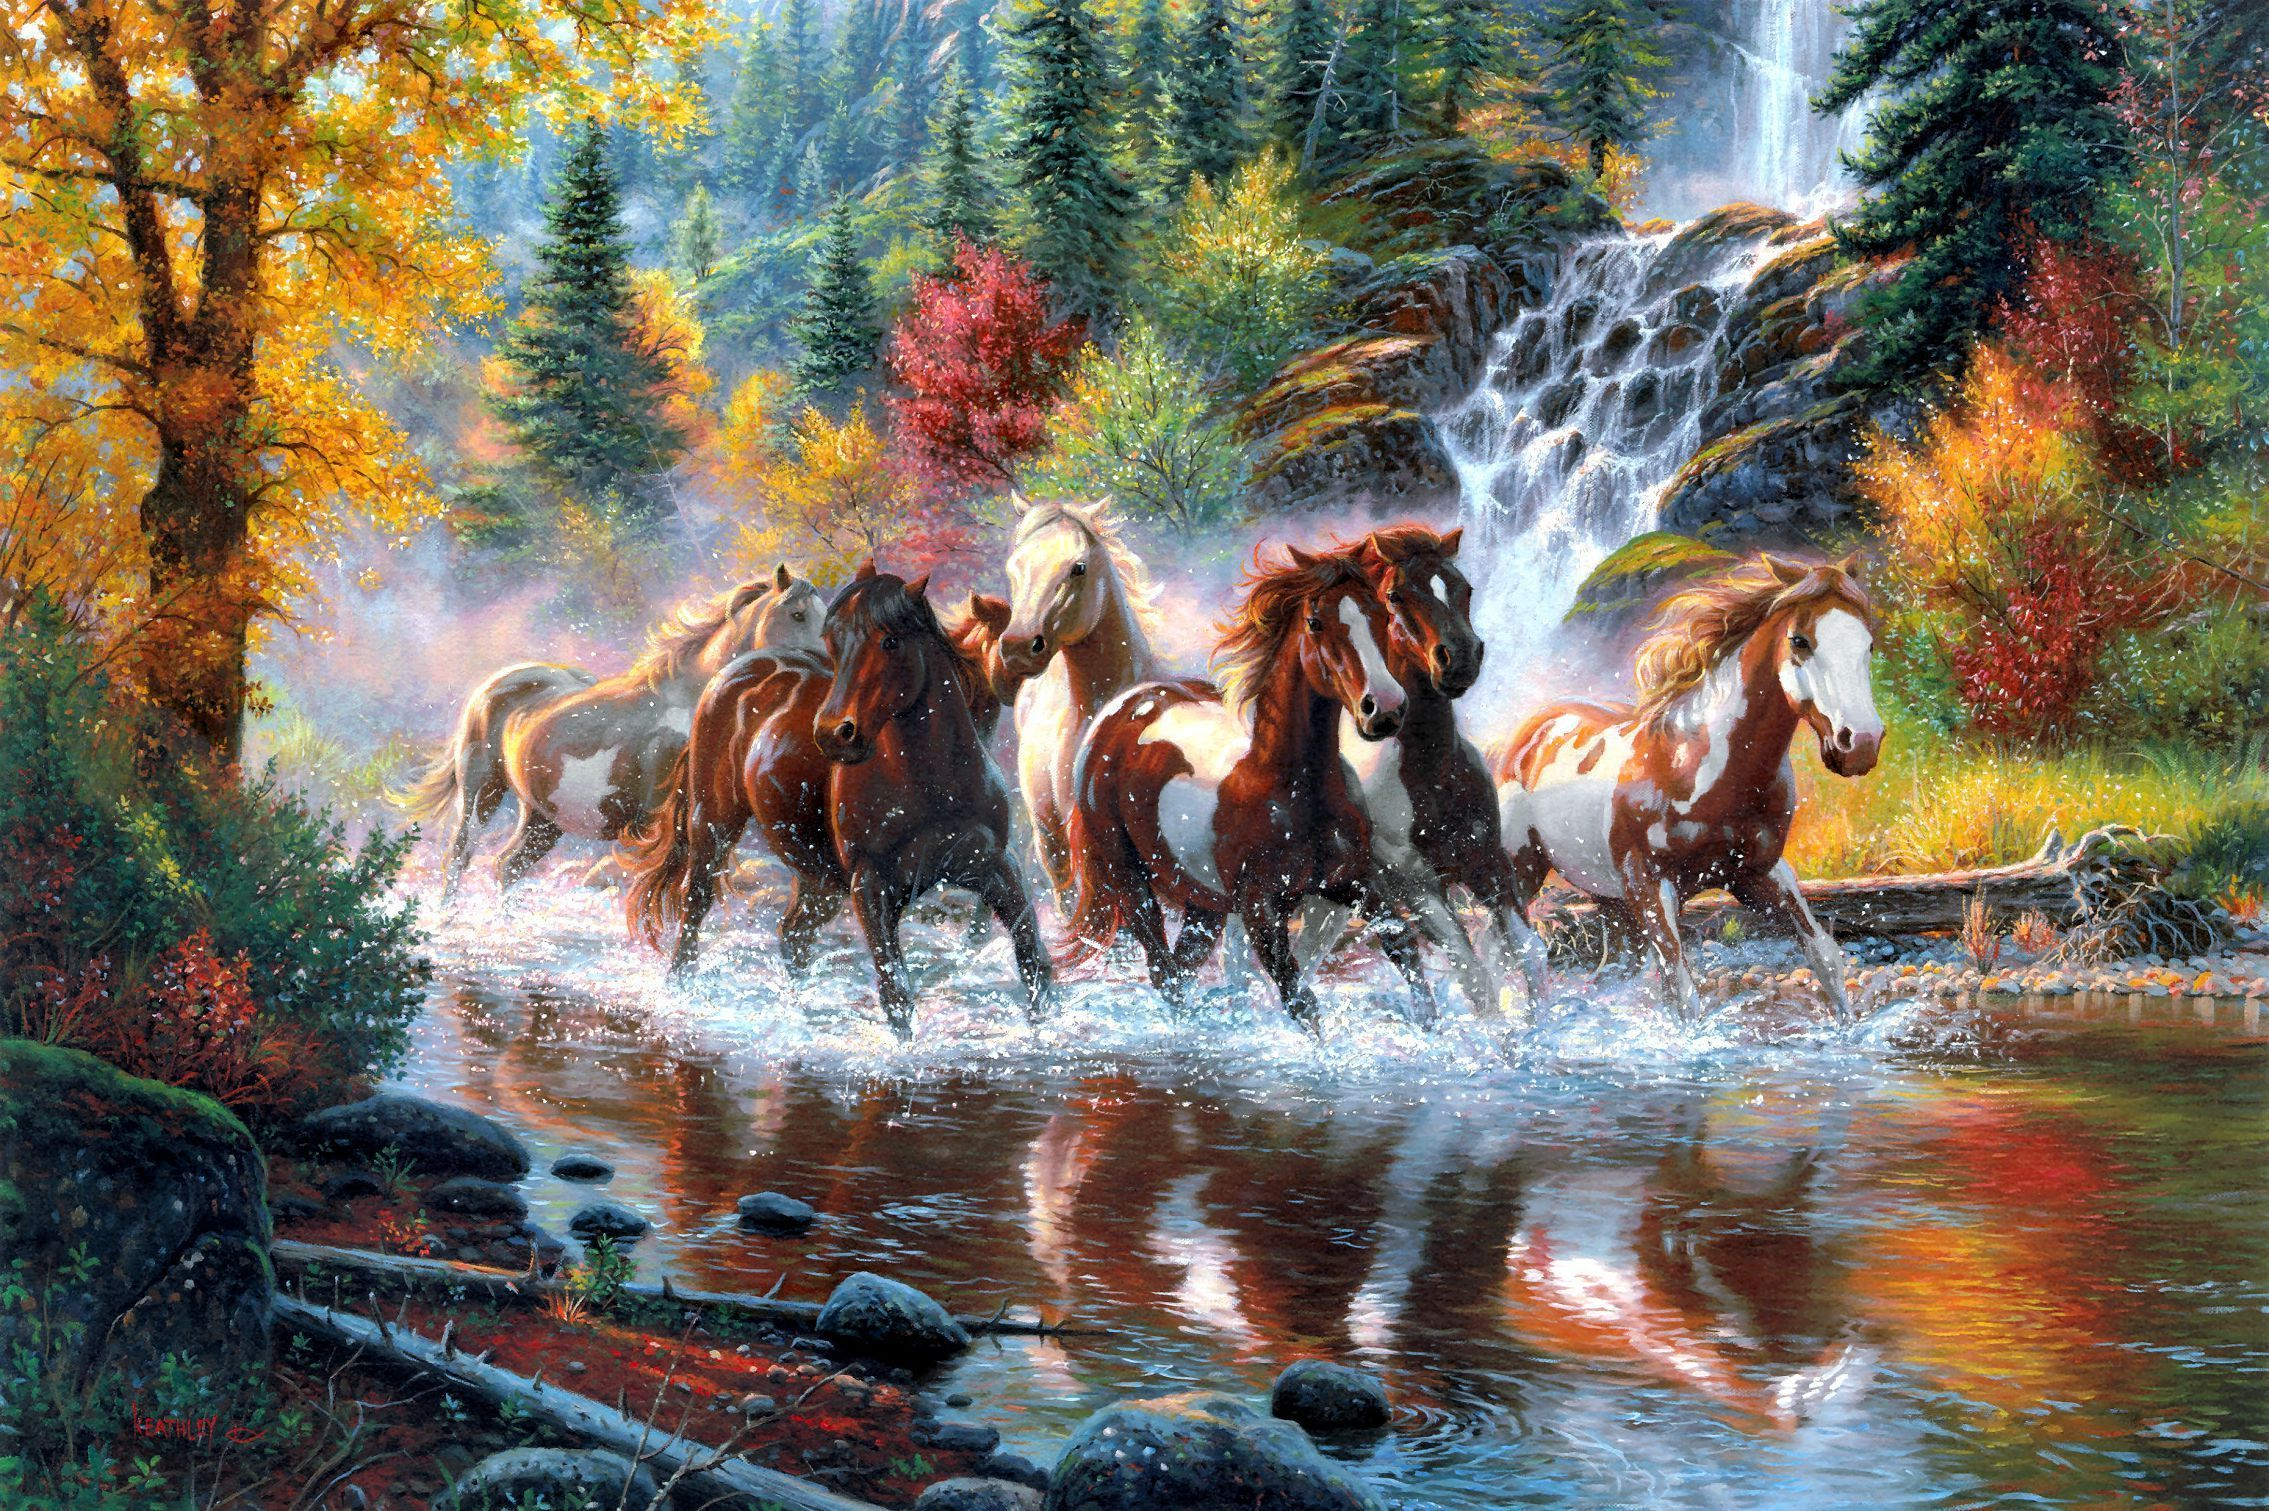 Cool Wallpaper Horse Forest - e665f5a8aec546be515454f916859b51  Perfect Image Reference_569142.jpg